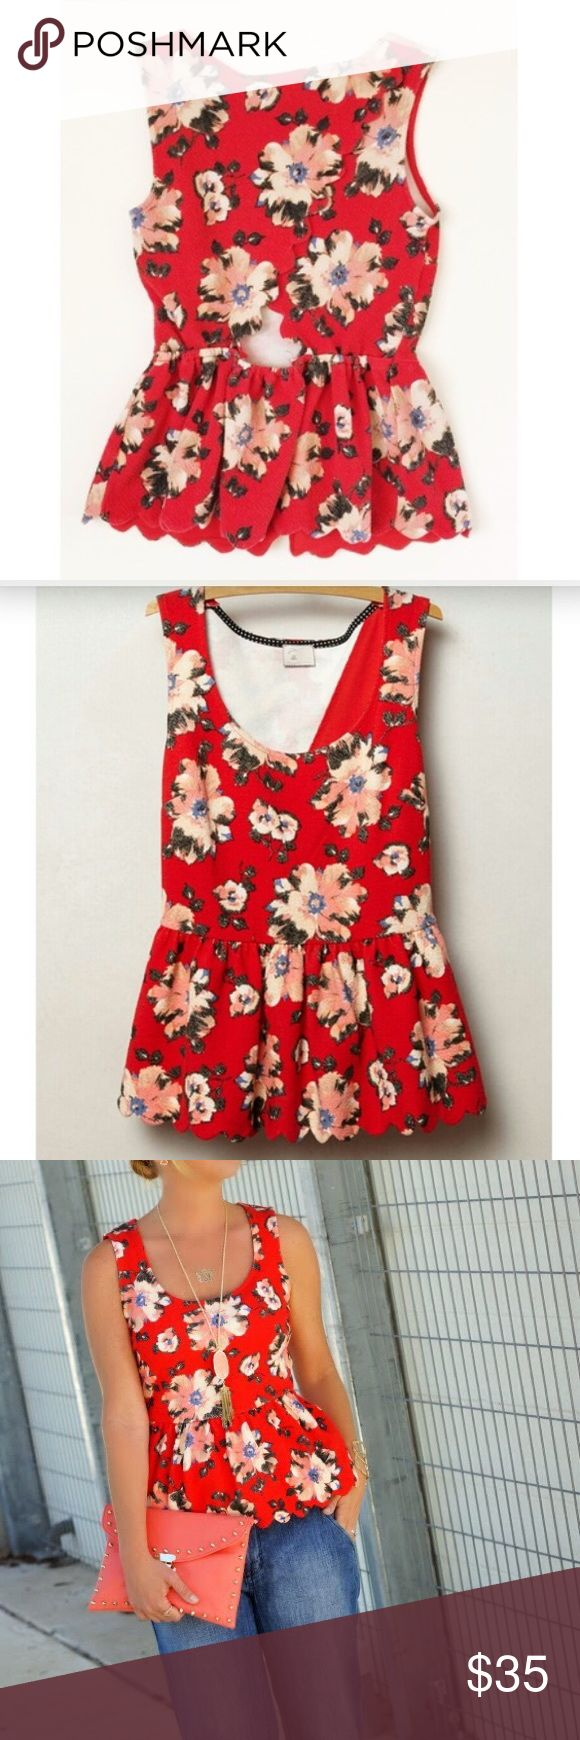 Anthropologie Postmark Red Peplum Top Adorable opening in the back! So cute for summer! Anthropologie Tops